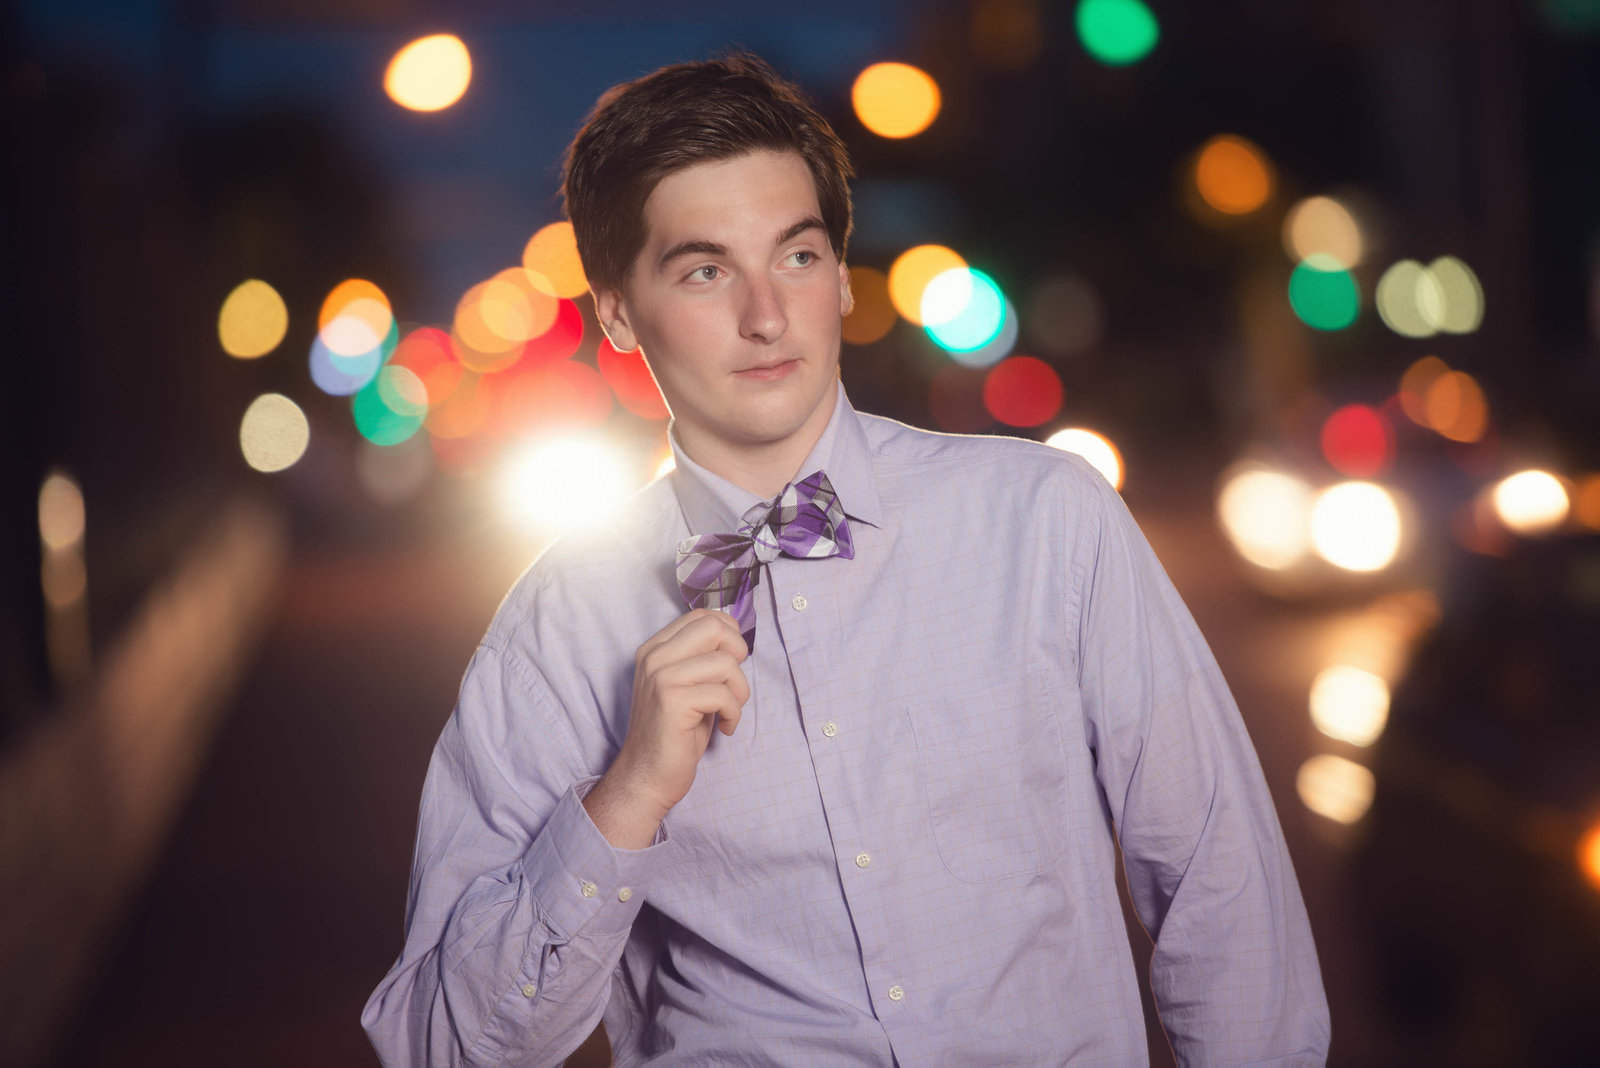 City lights guy senior pictures